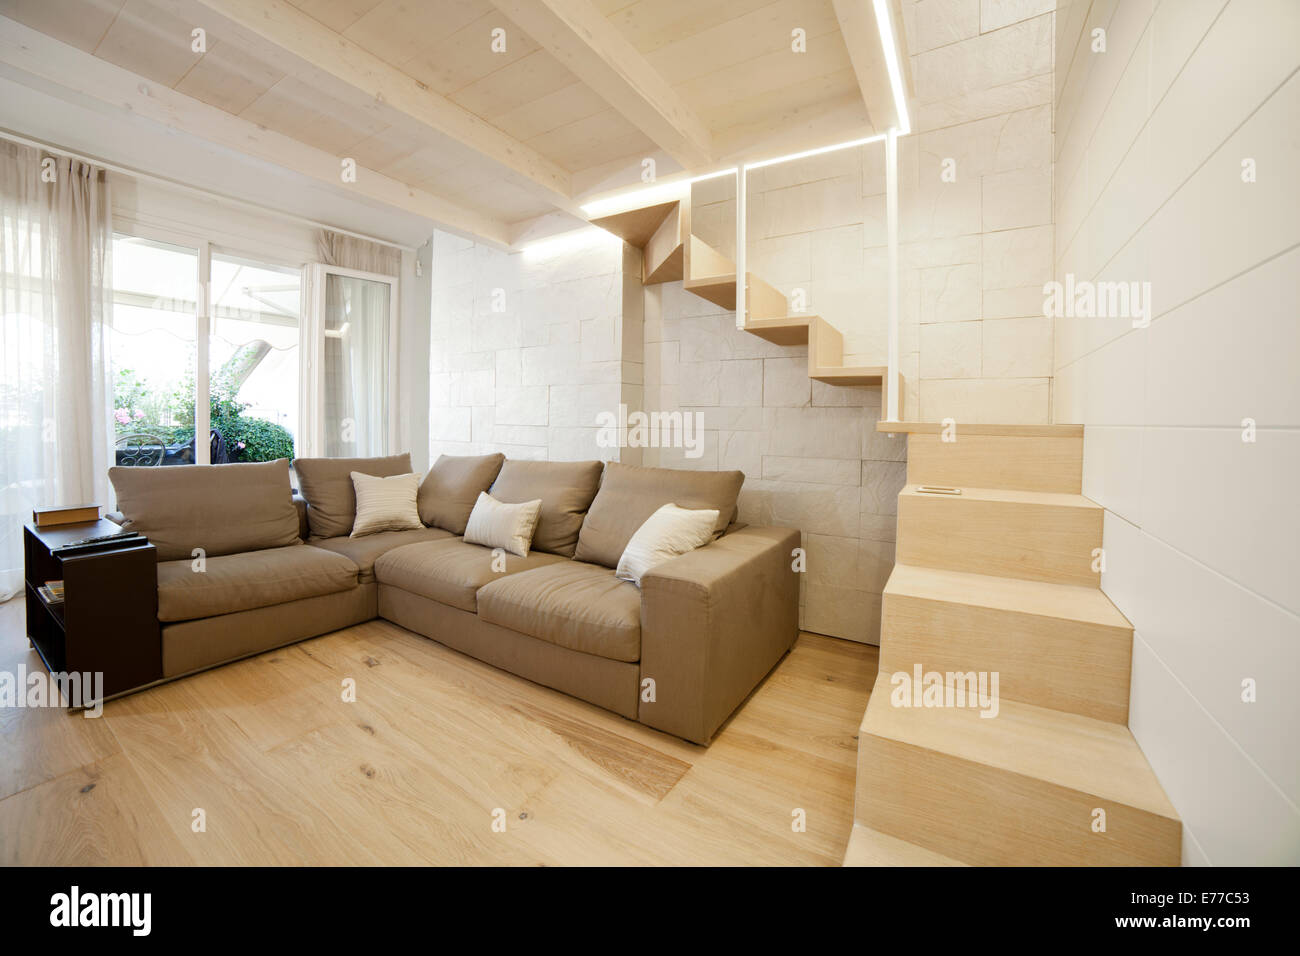 Modern Living Room With Stairs To A Hidden Space Upstairs Stock